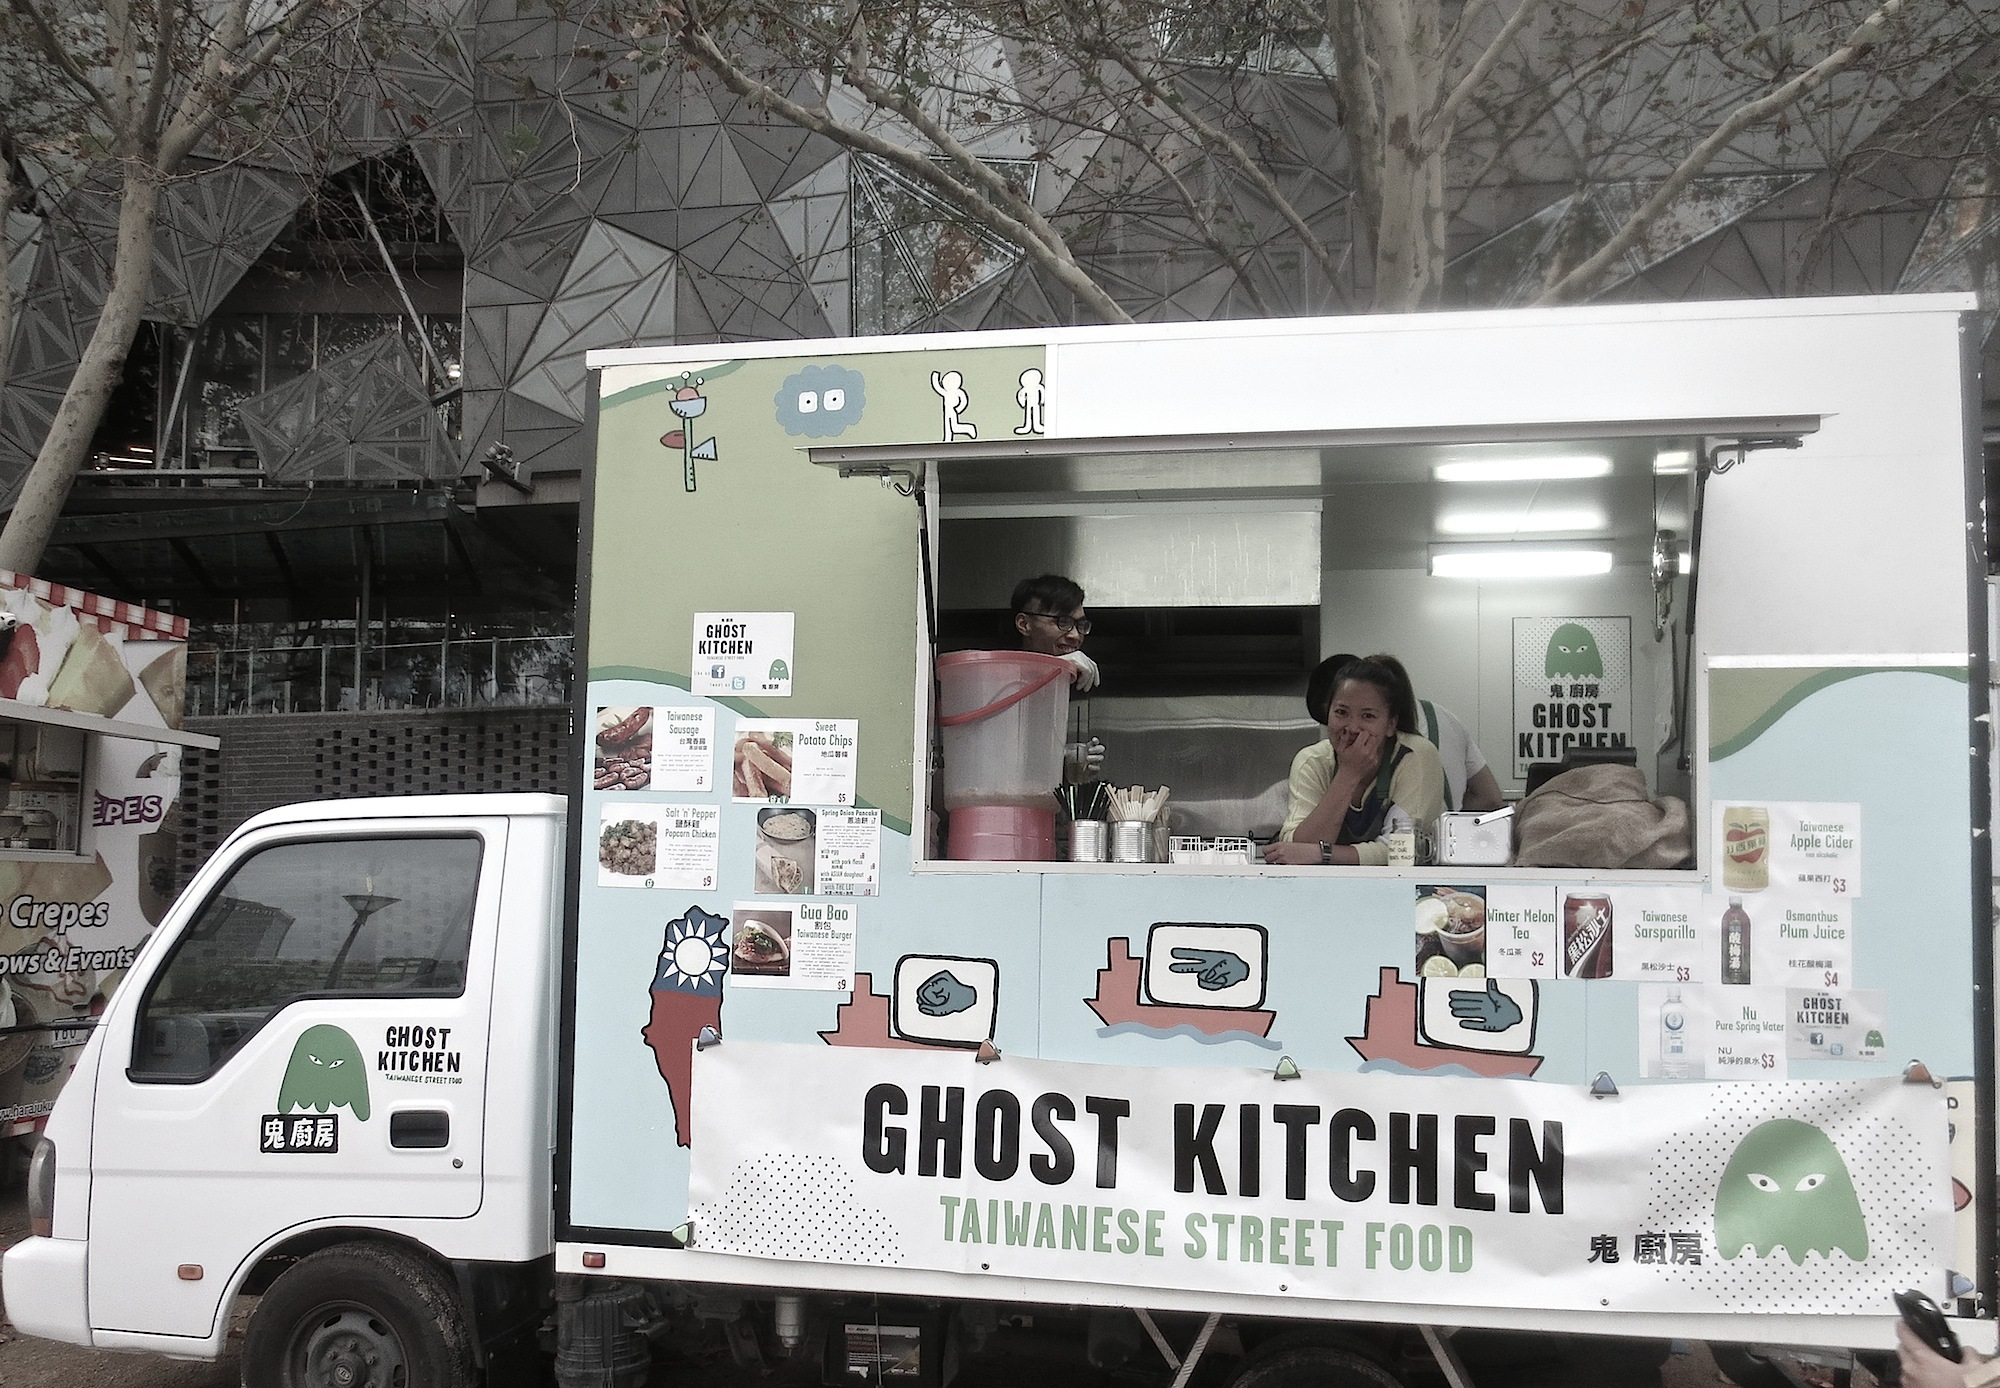 Ghost kitchen taiwanese street food melbourne for Perfect kitchen takeaway menu harrogate